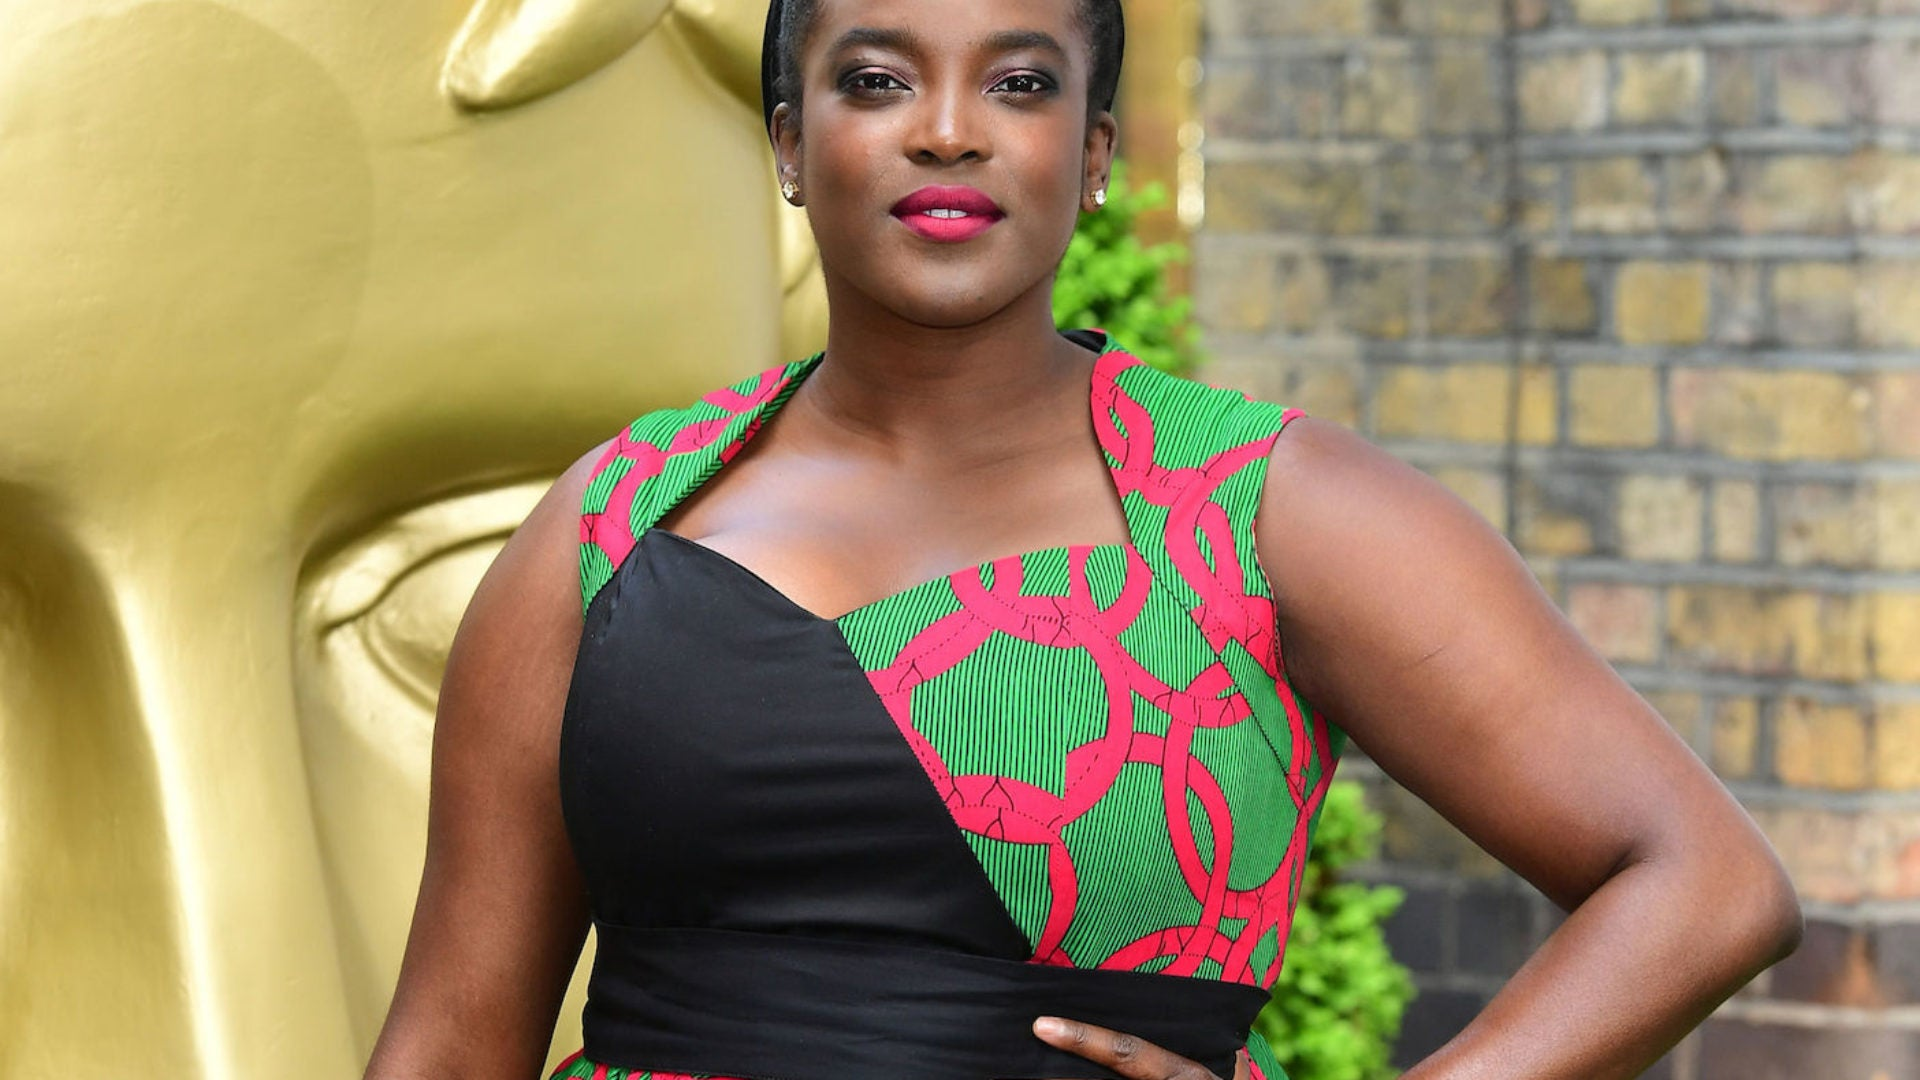 'Luther' Star Wunmi Mosaku Says Women Deserve To Be Protected